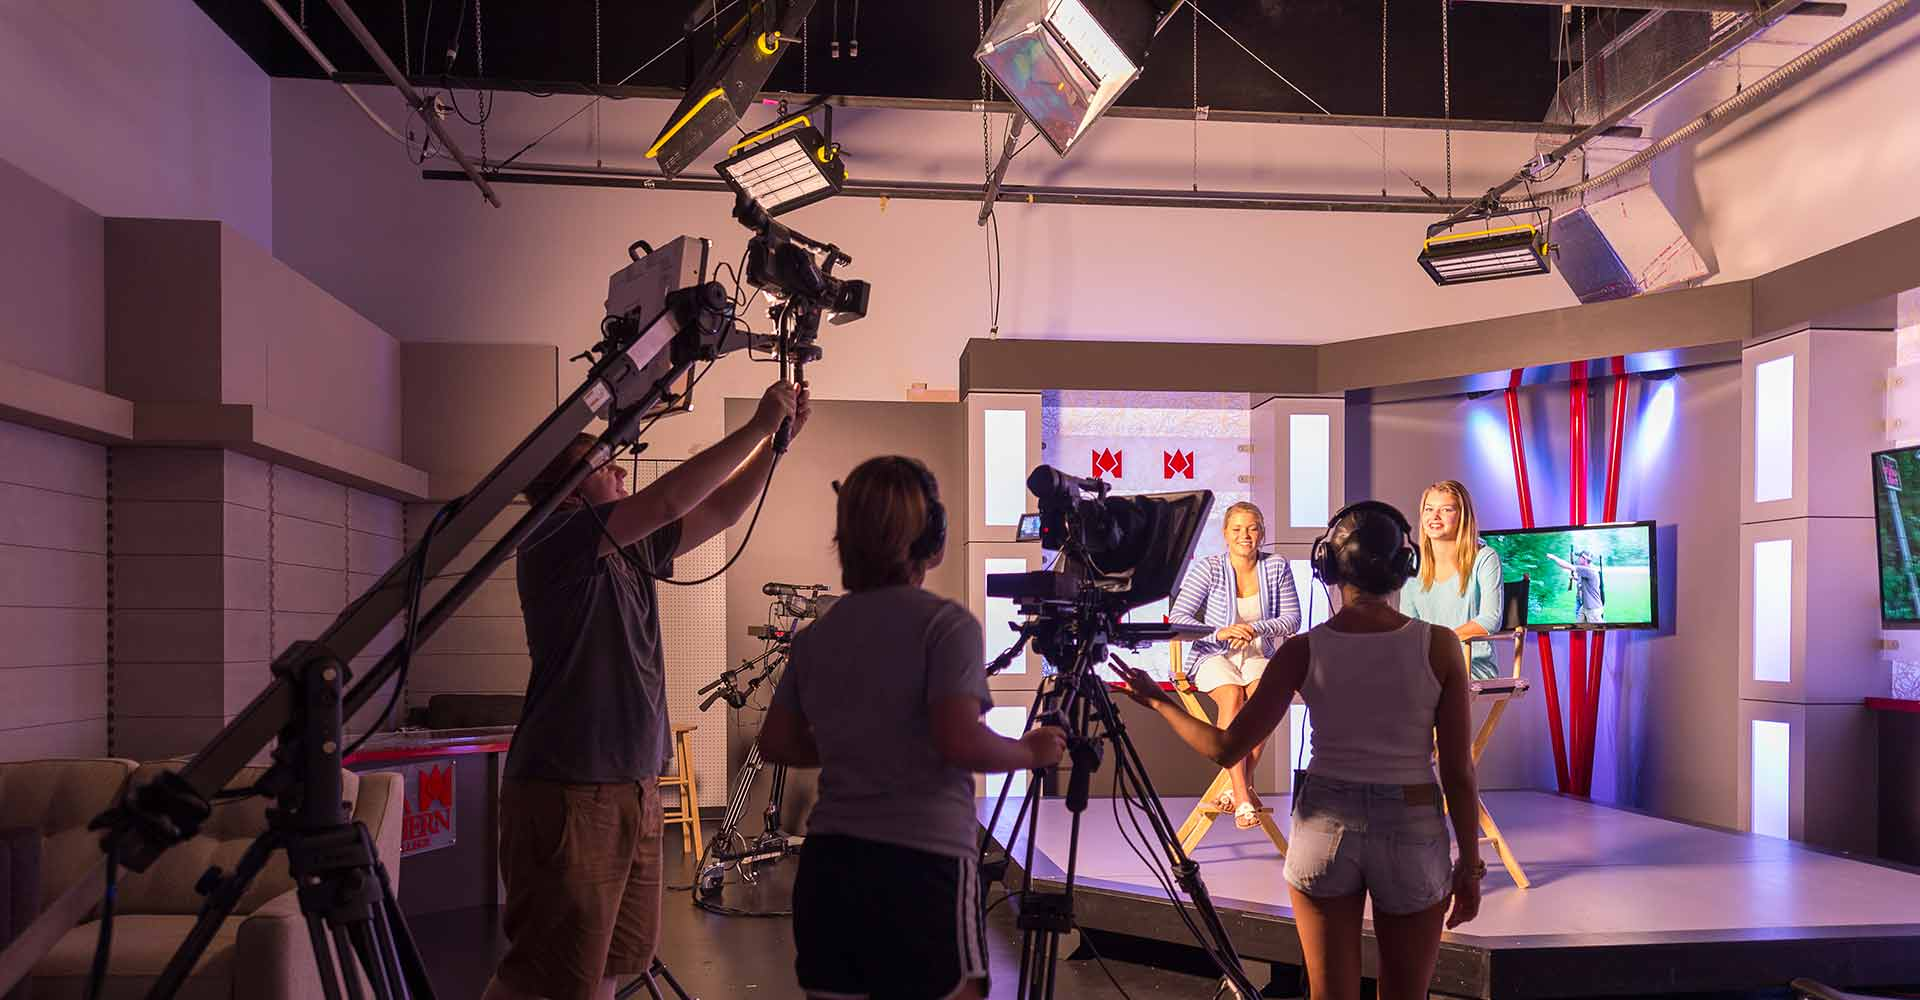 communication students shoot a show in a studio